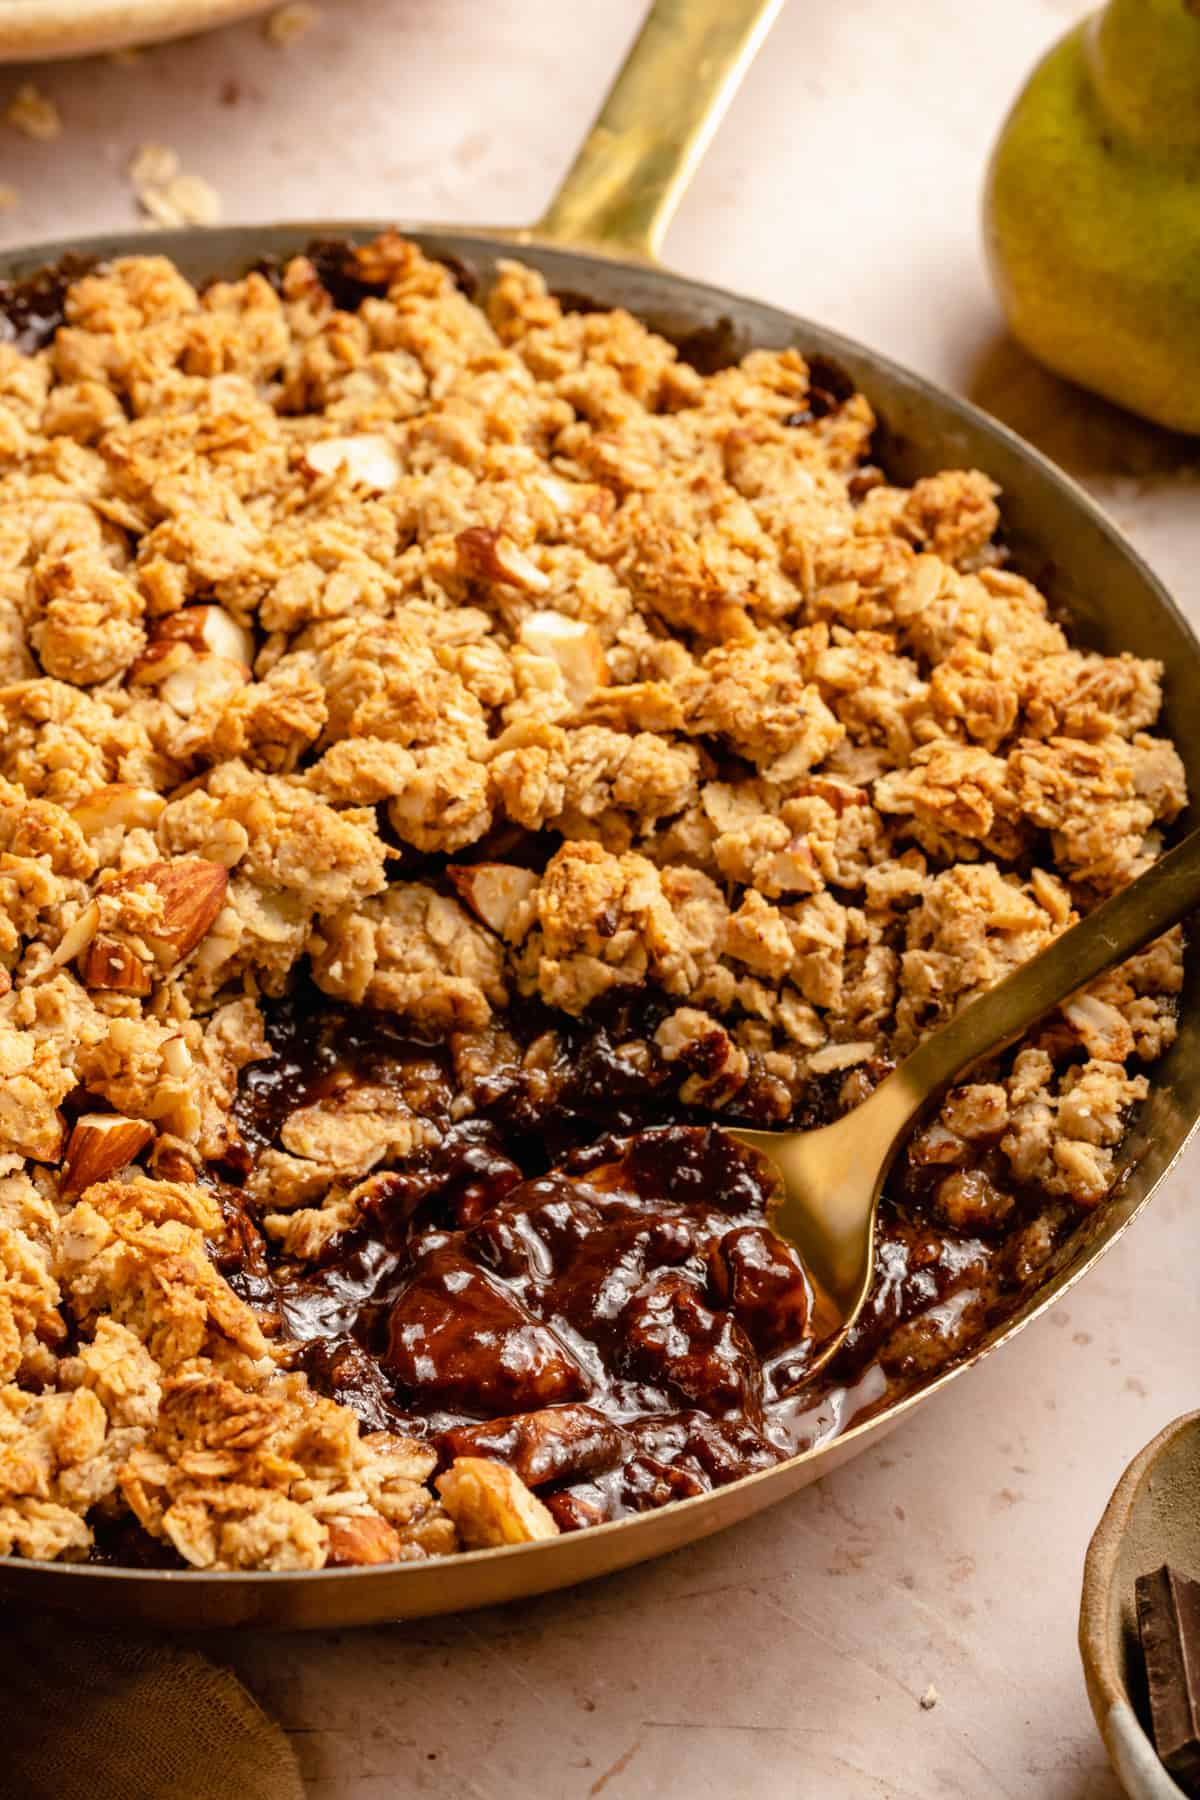 A spoon taking out a serving of crumble oozing with pears and chocolate with an oat and almond crumble topping.